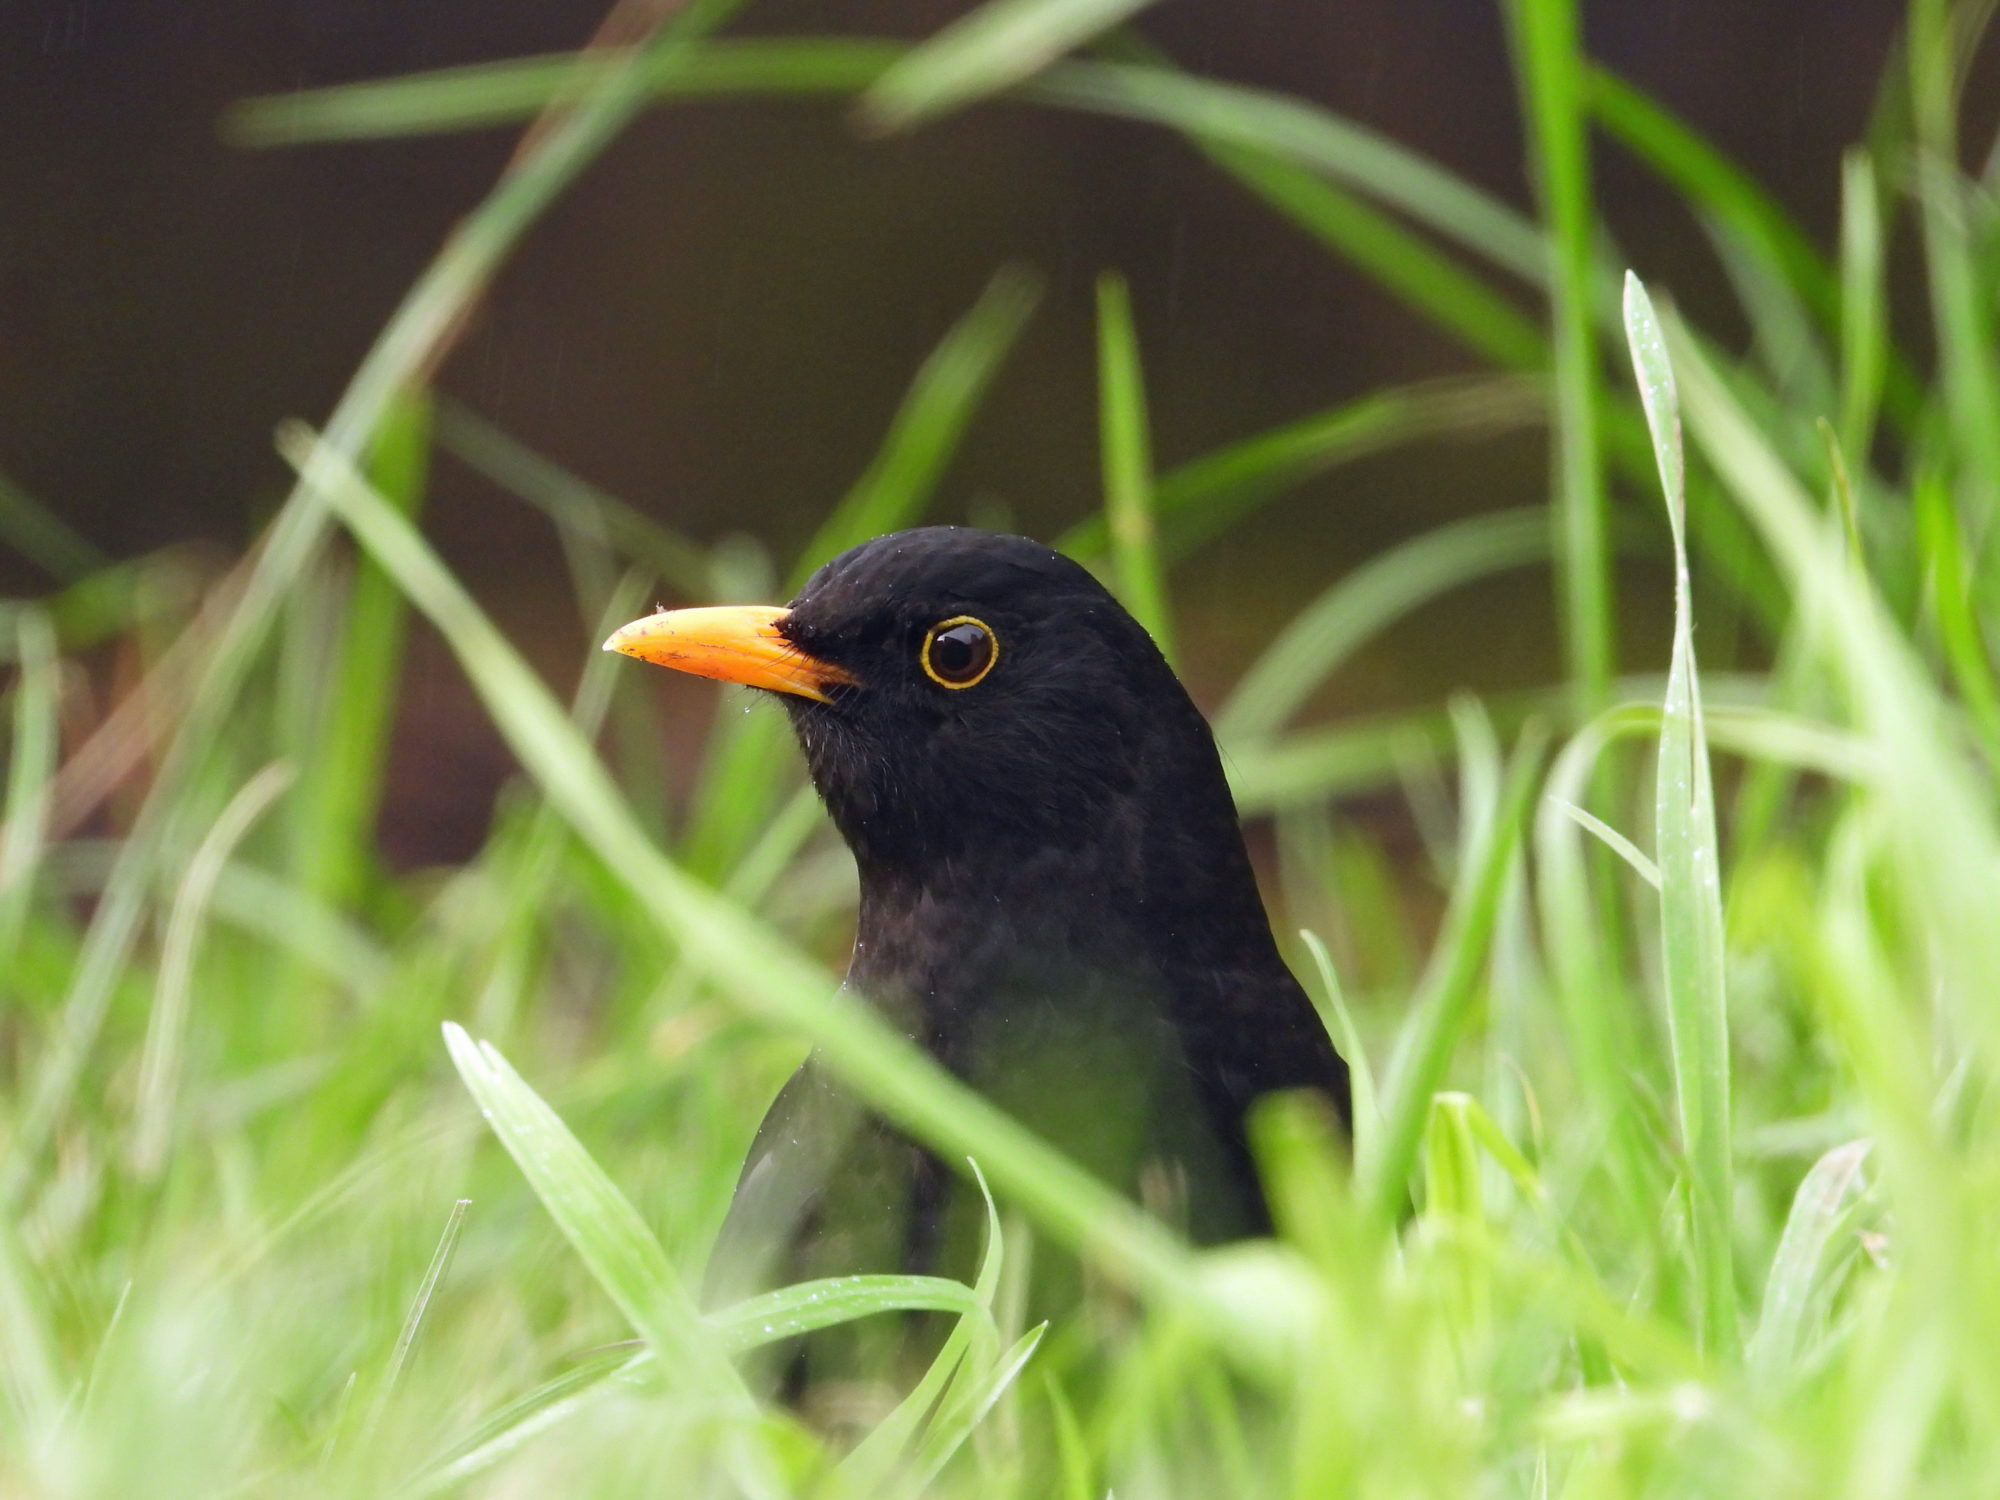 Photograph of a Blackbird hiding in the grass and looking off towards the left.